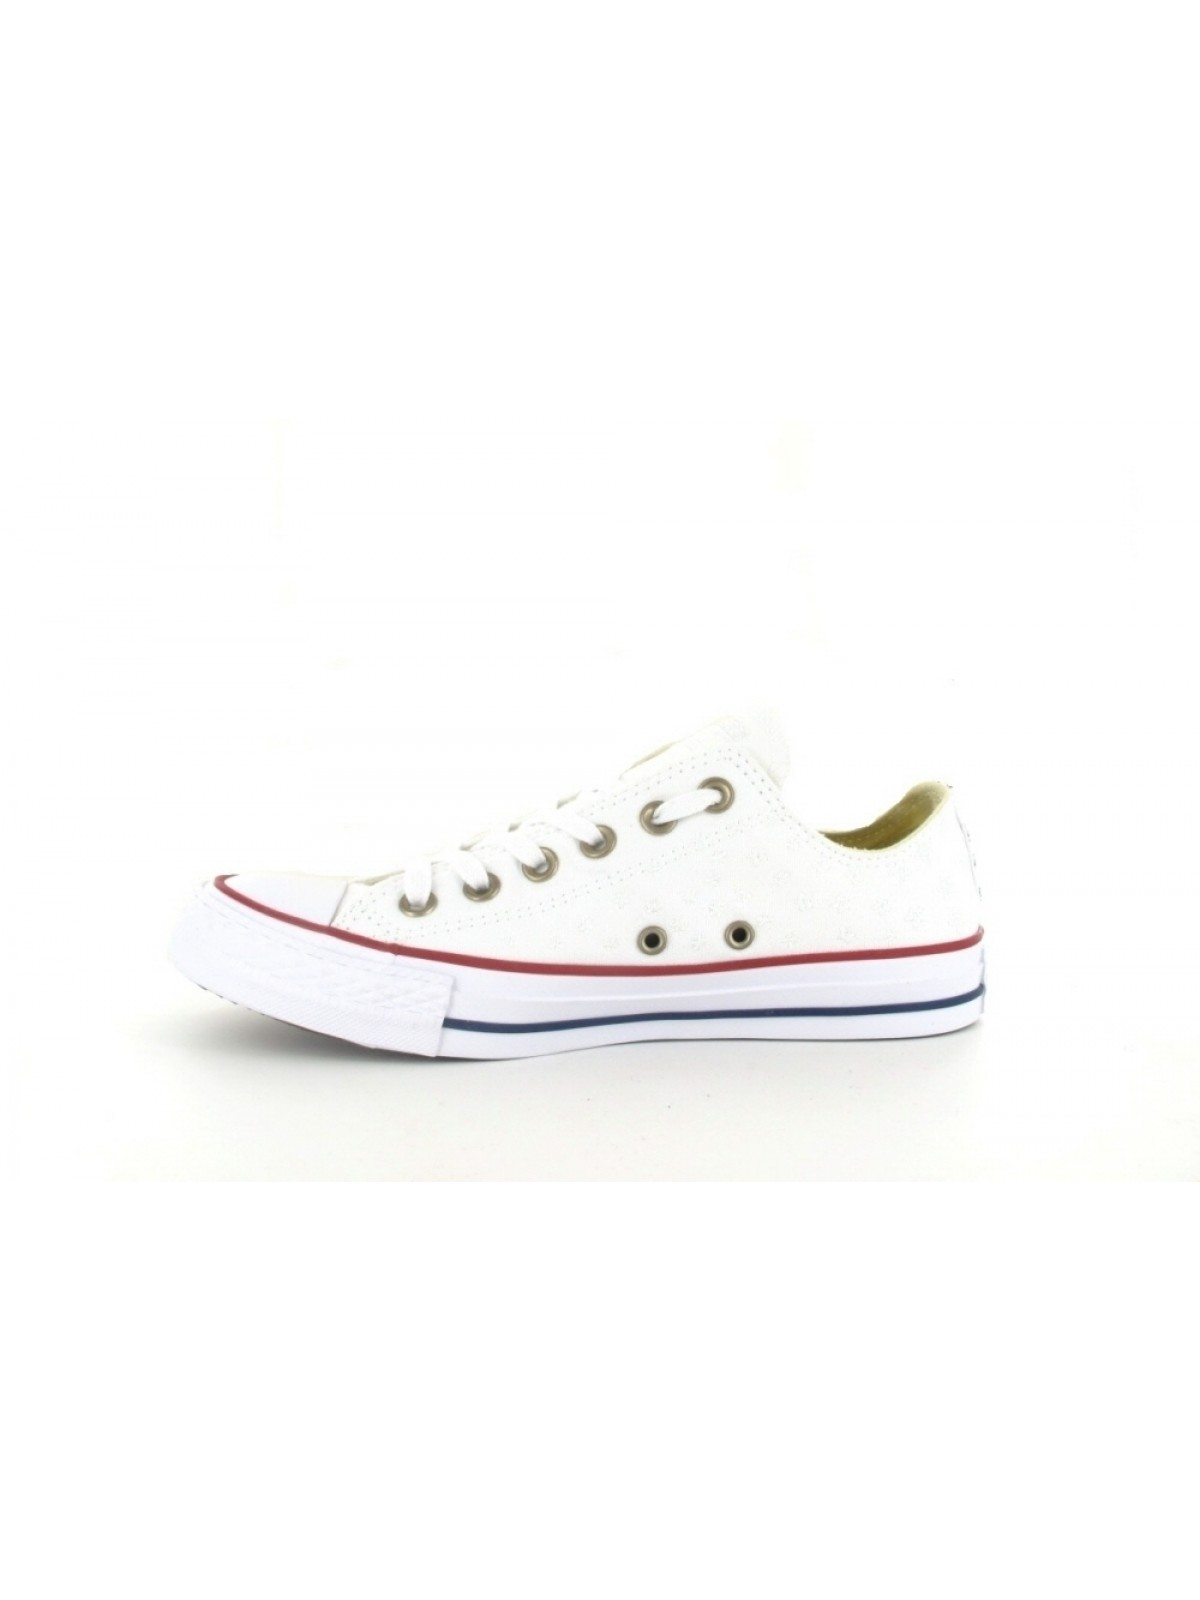 afb731a3be559 Converse Chuck Taylor all star toile basse blanc étoile